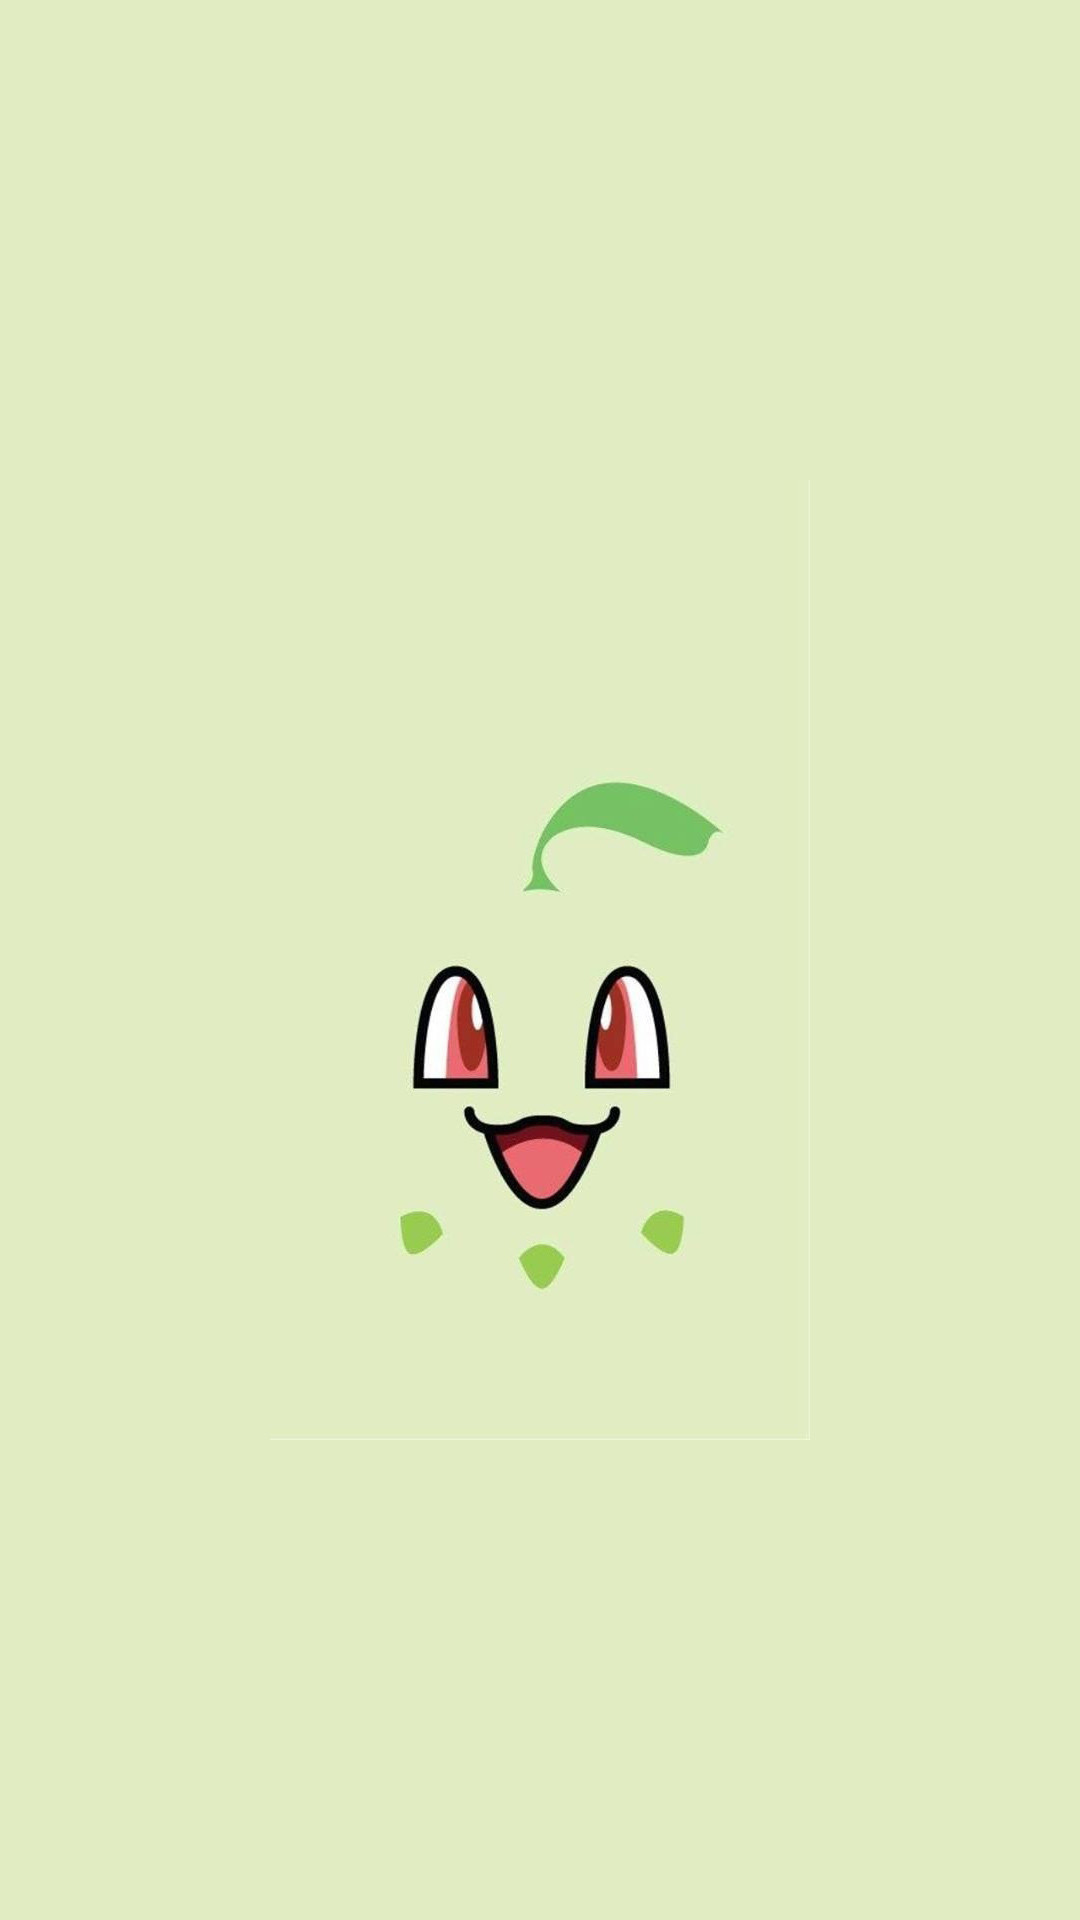 1080x1920 Video games · Chikorita Pokemon iPhone 6+ HD Wallpaper -  http://freebestpicture.com/